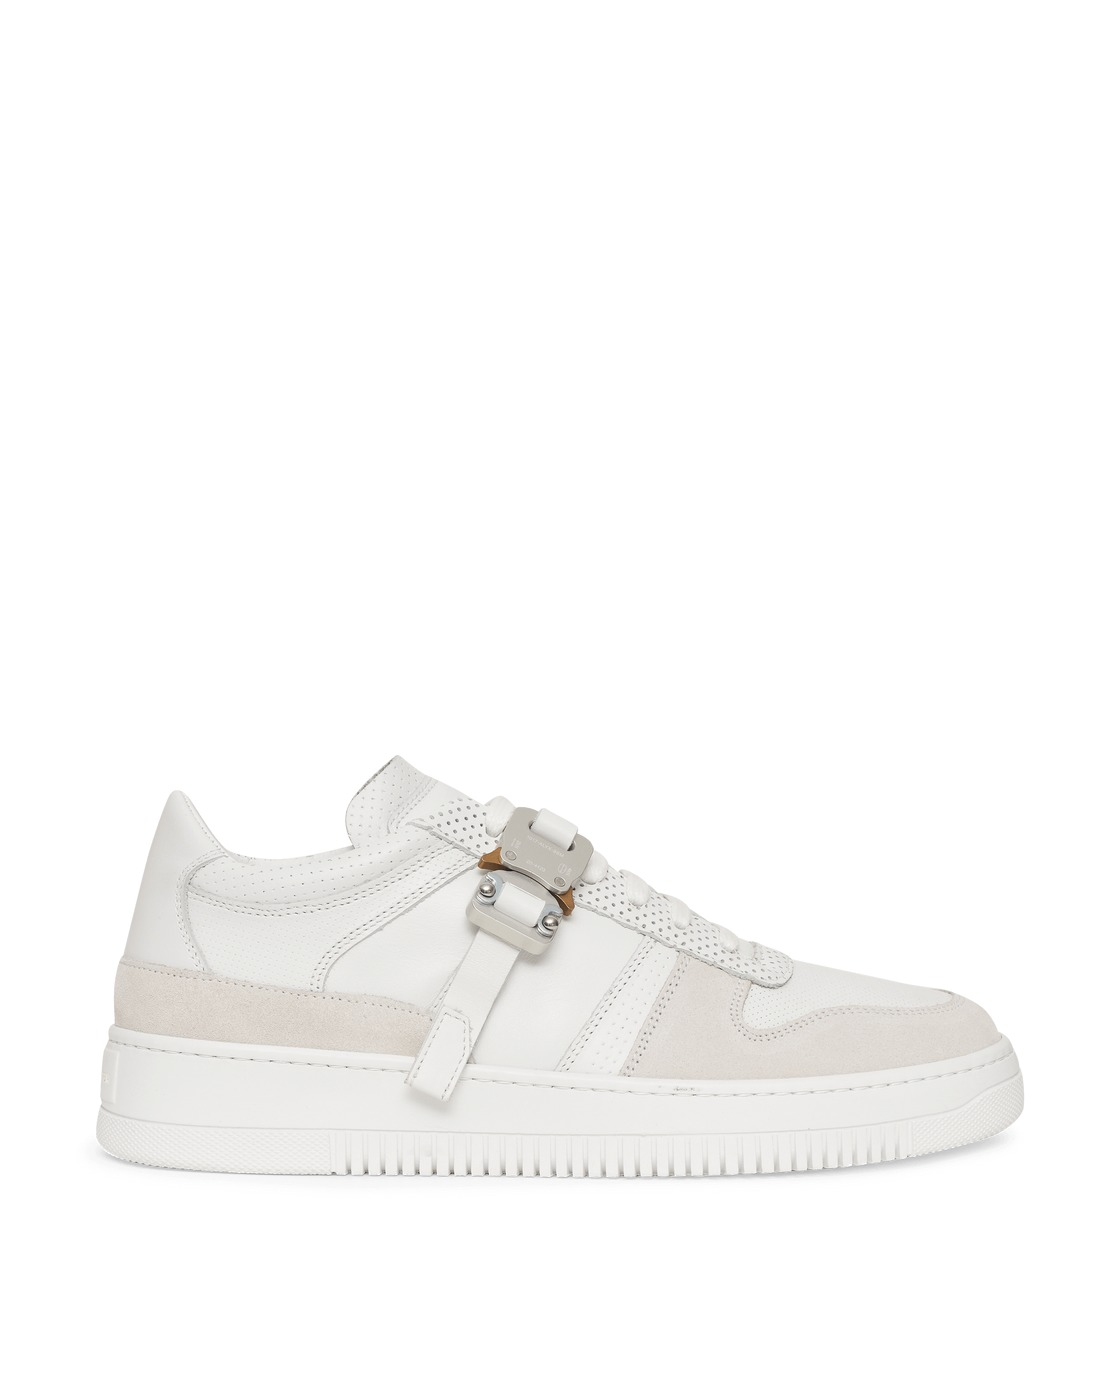 Photo: 1017 Alyx 9sm Leather Buckle Sneakers White